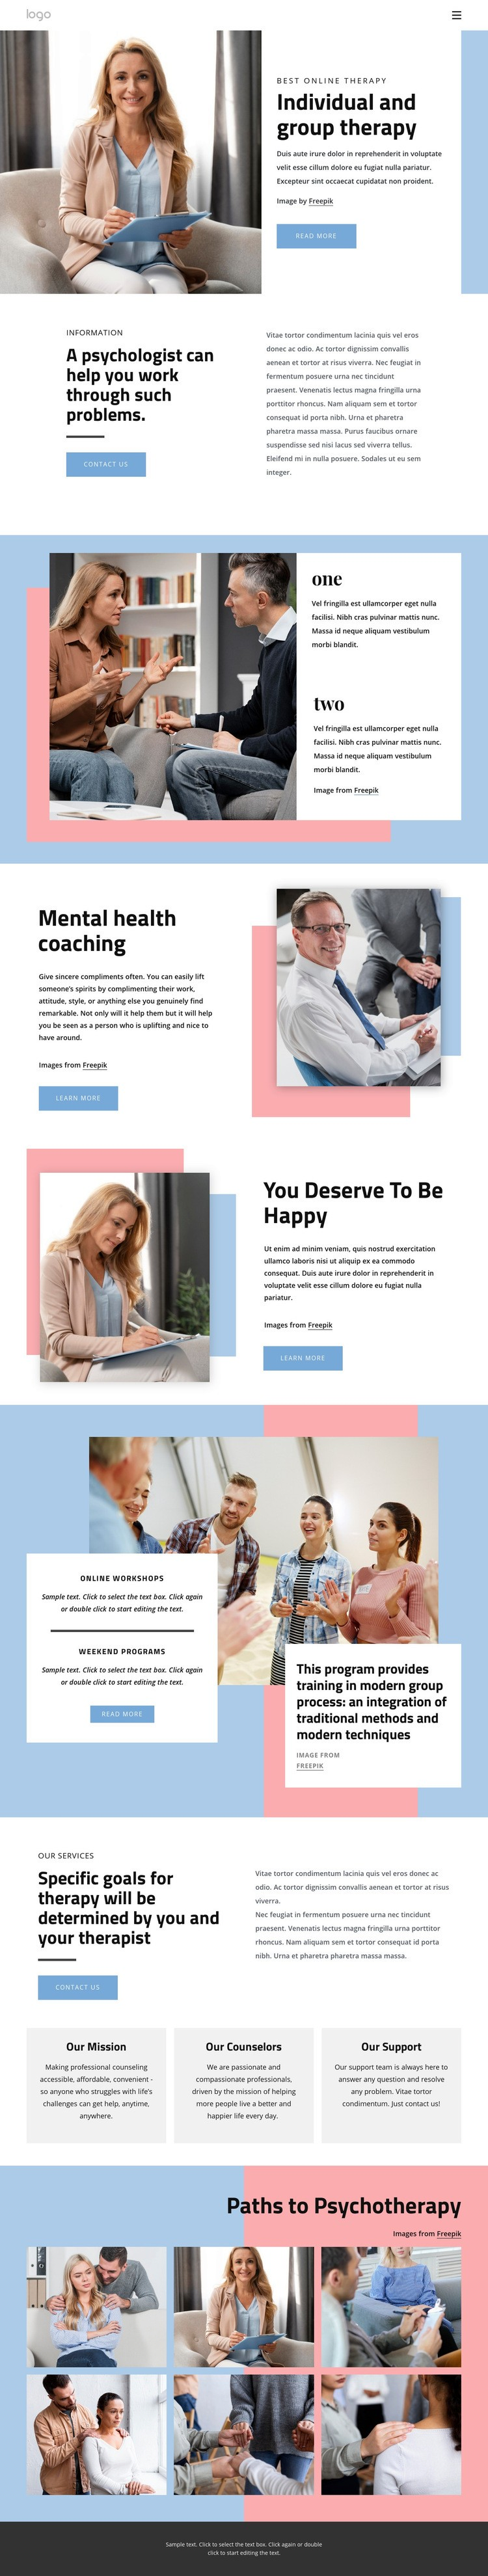 Undividual and group therapy Wysiwyg Editor Html